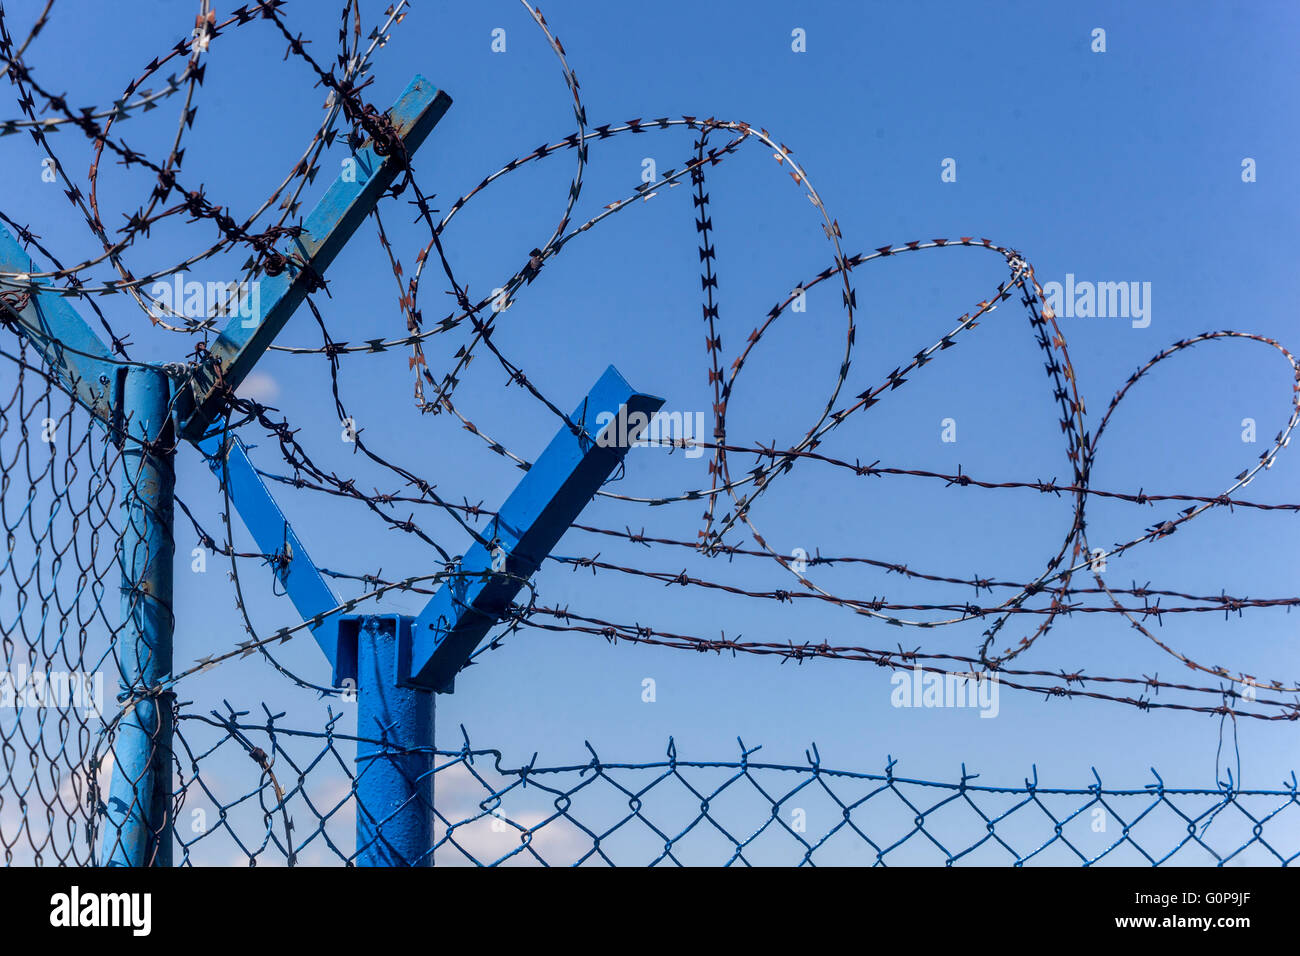 Wire Stock Photos & Wire Stock Images - Alamy